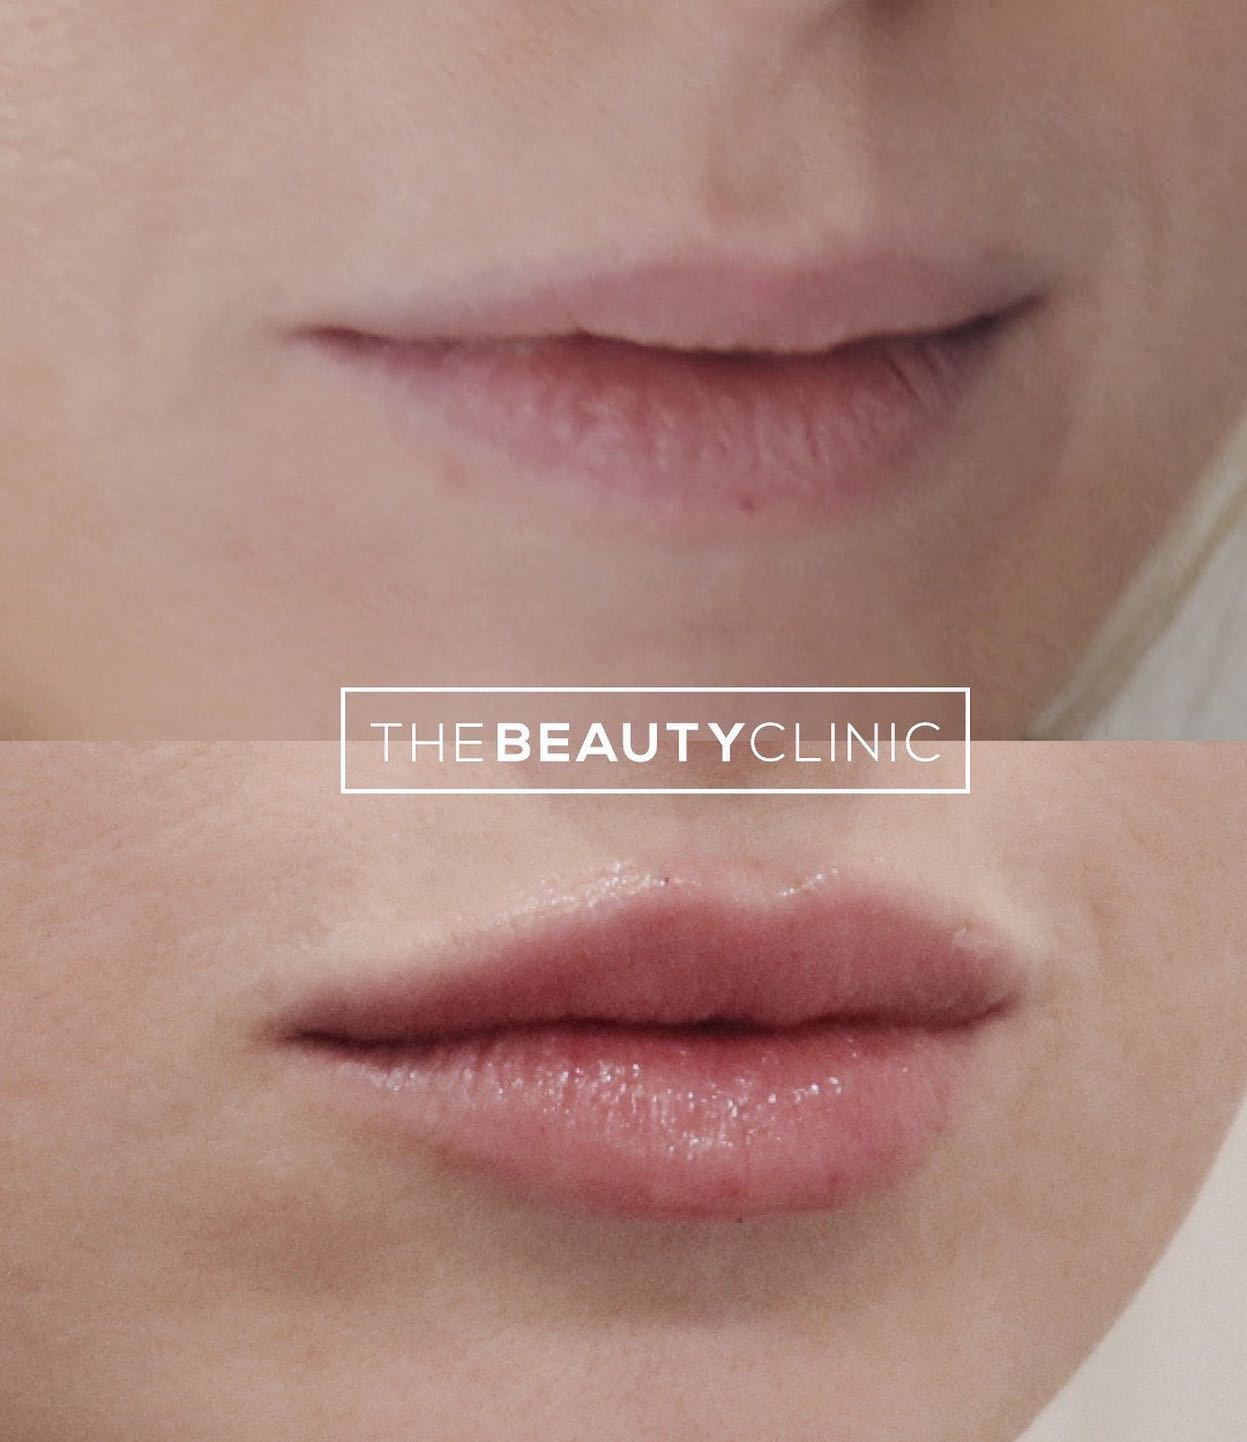 The Beauty Clinic We used Restylane Kysse to gently add volume and define the shape of these pretty lips